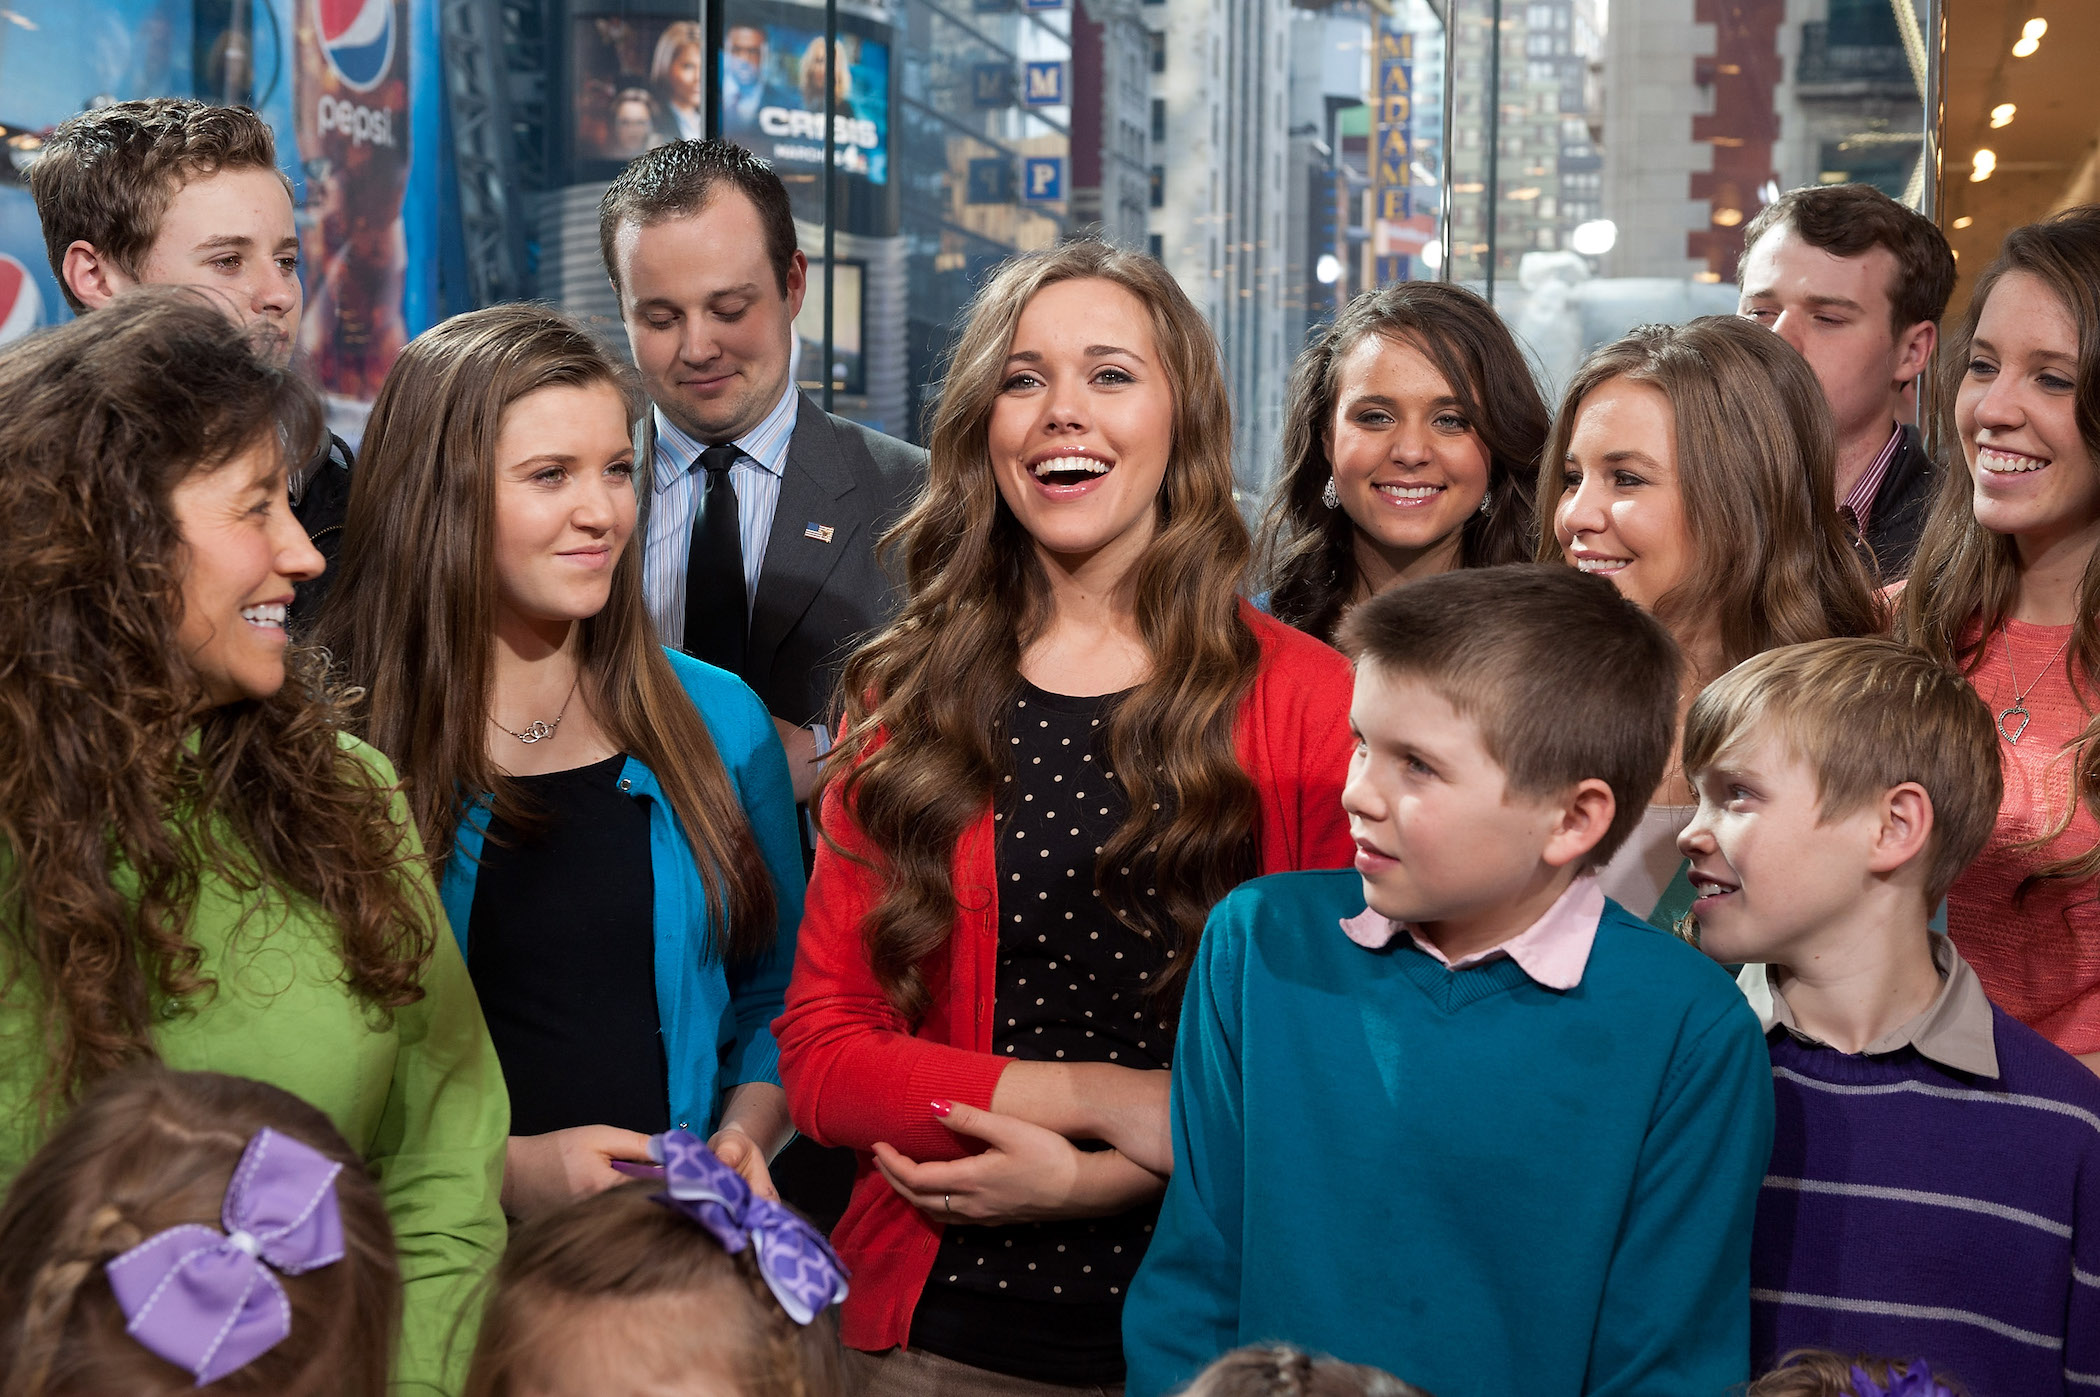 Group photos of the Duggar family, with Jessa Duggar at the center in red cardigan, during a 2014 appearance on Extra